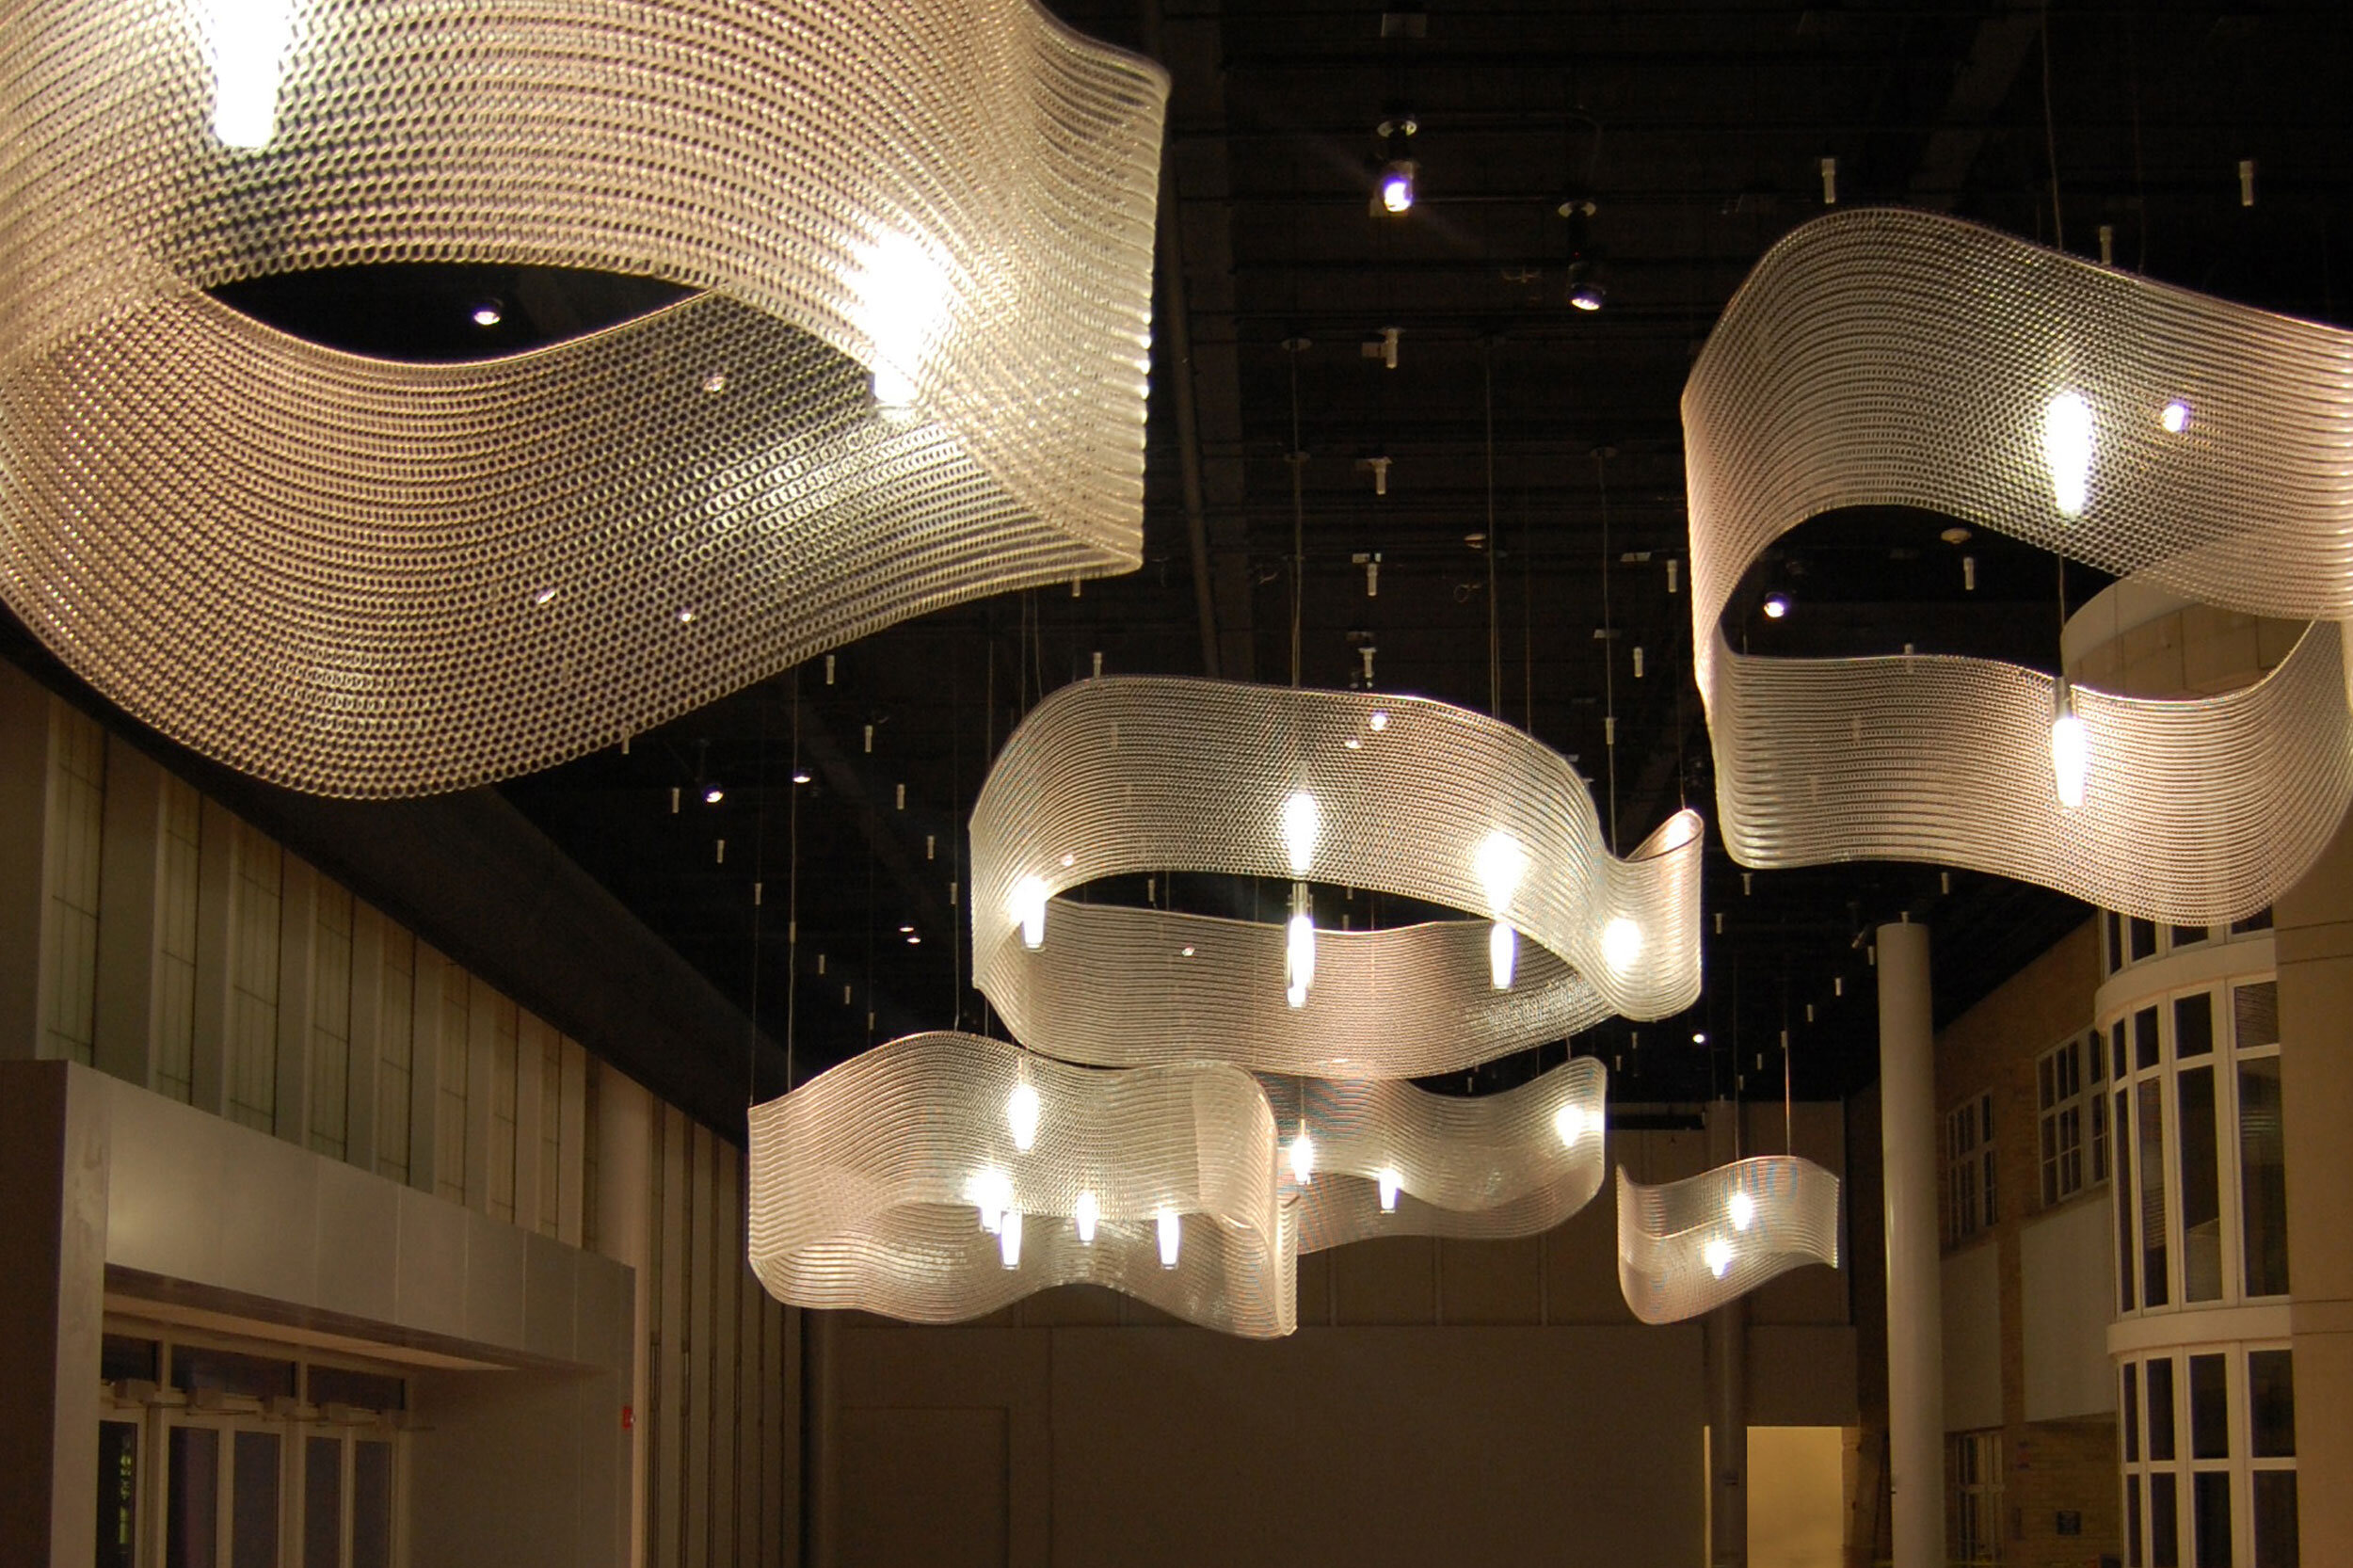 Lighting and Ceiling Features with Kaynemaile   Kaynemaile can be used for sculptural and decorative ceiling features or custom lighting pieces. Being highly malleable the options are endless!